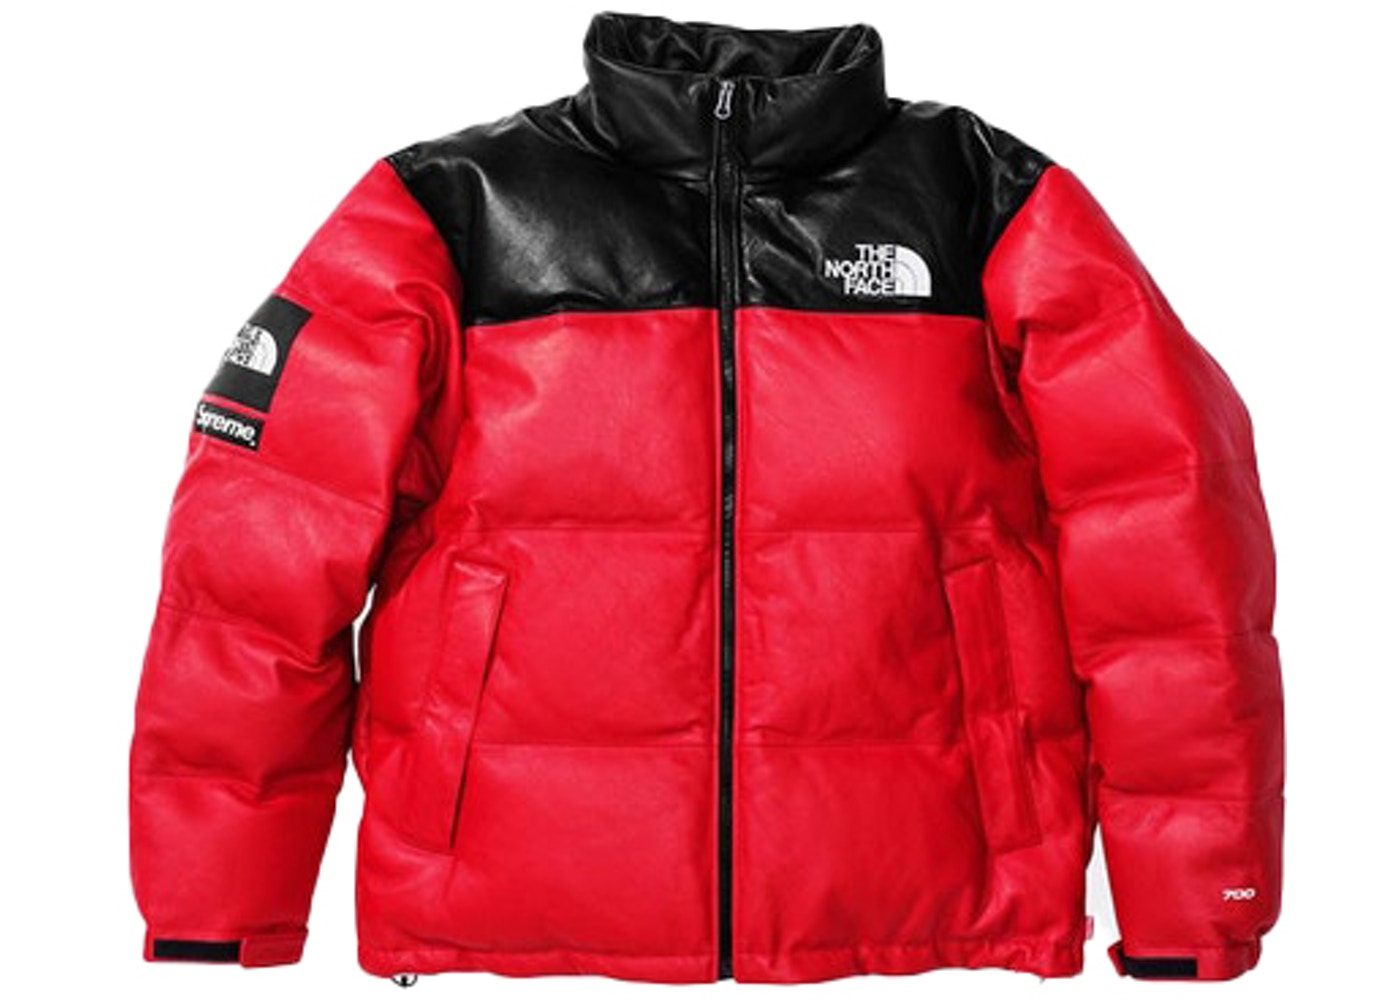 Splinternye Supreme The North Face Leather Nuptse Jacket Red - FW17 YT-77